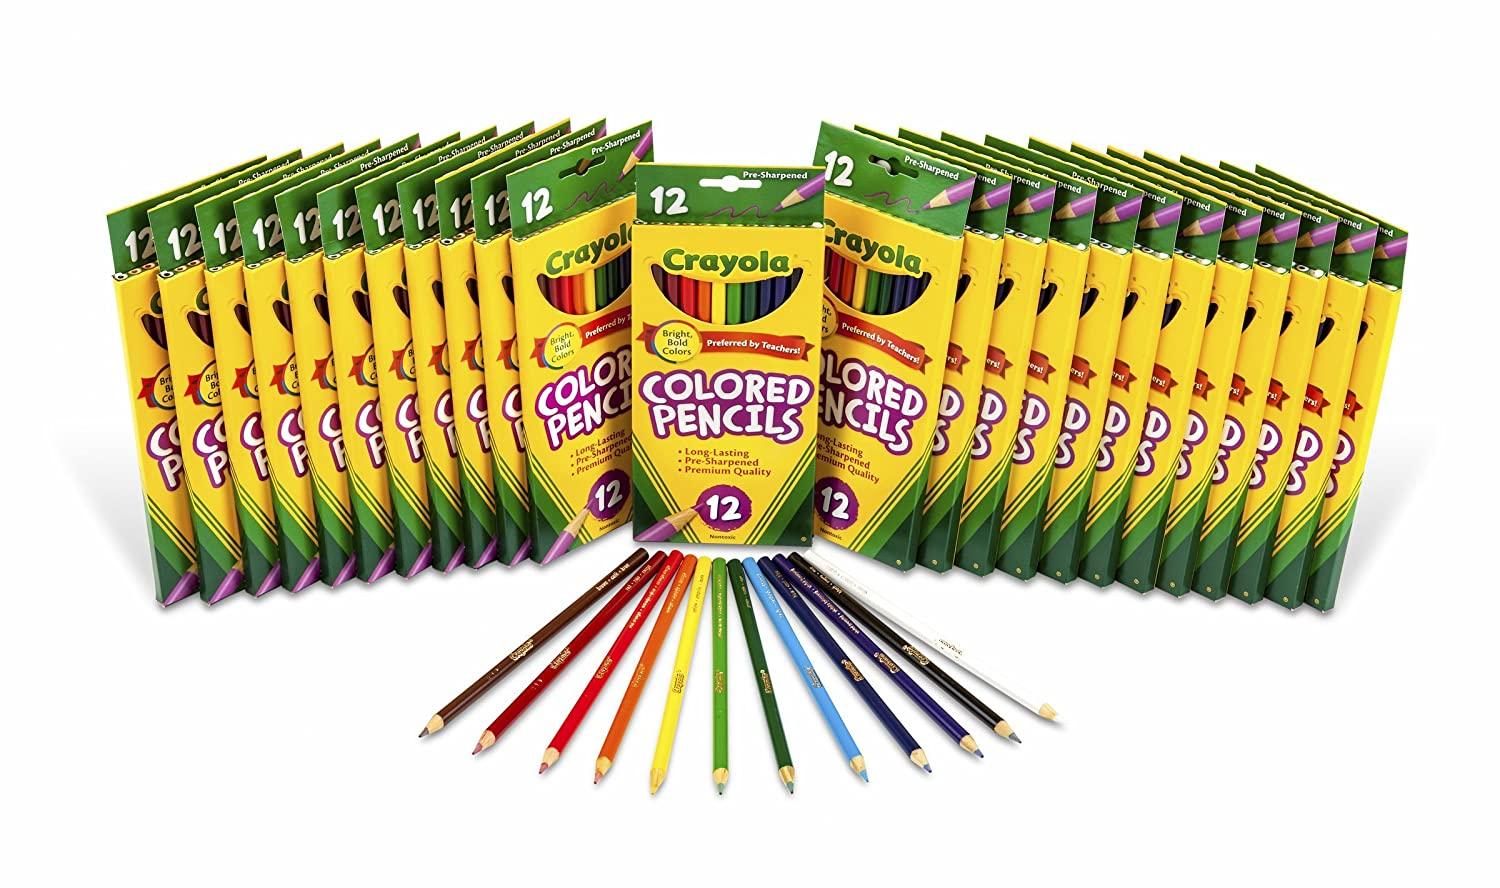 Amazoncom Crayola Colored Pencils Bulk 24 Packs of 12Count Toys